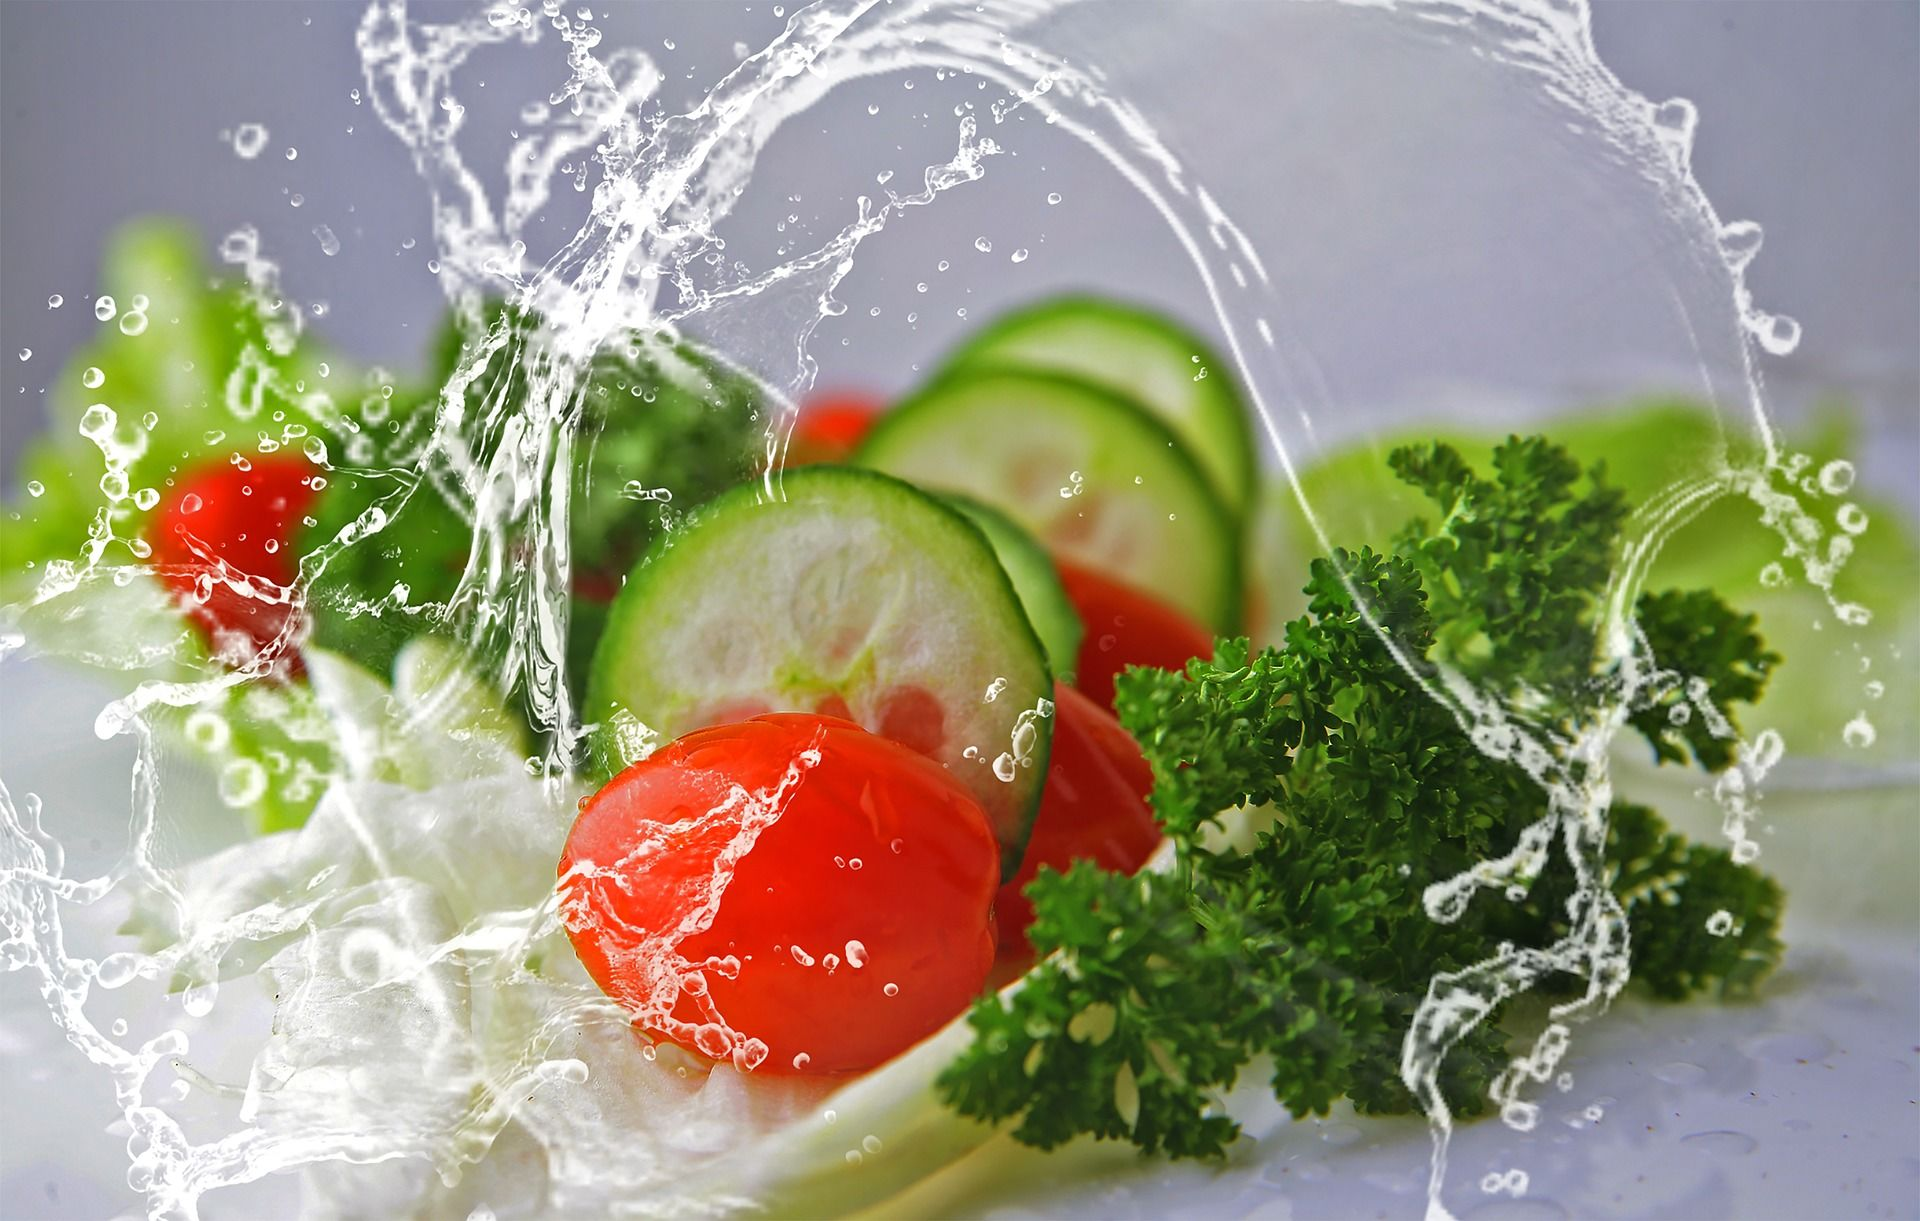 water splashing on baby tomato, cilantro with cucumber slices.